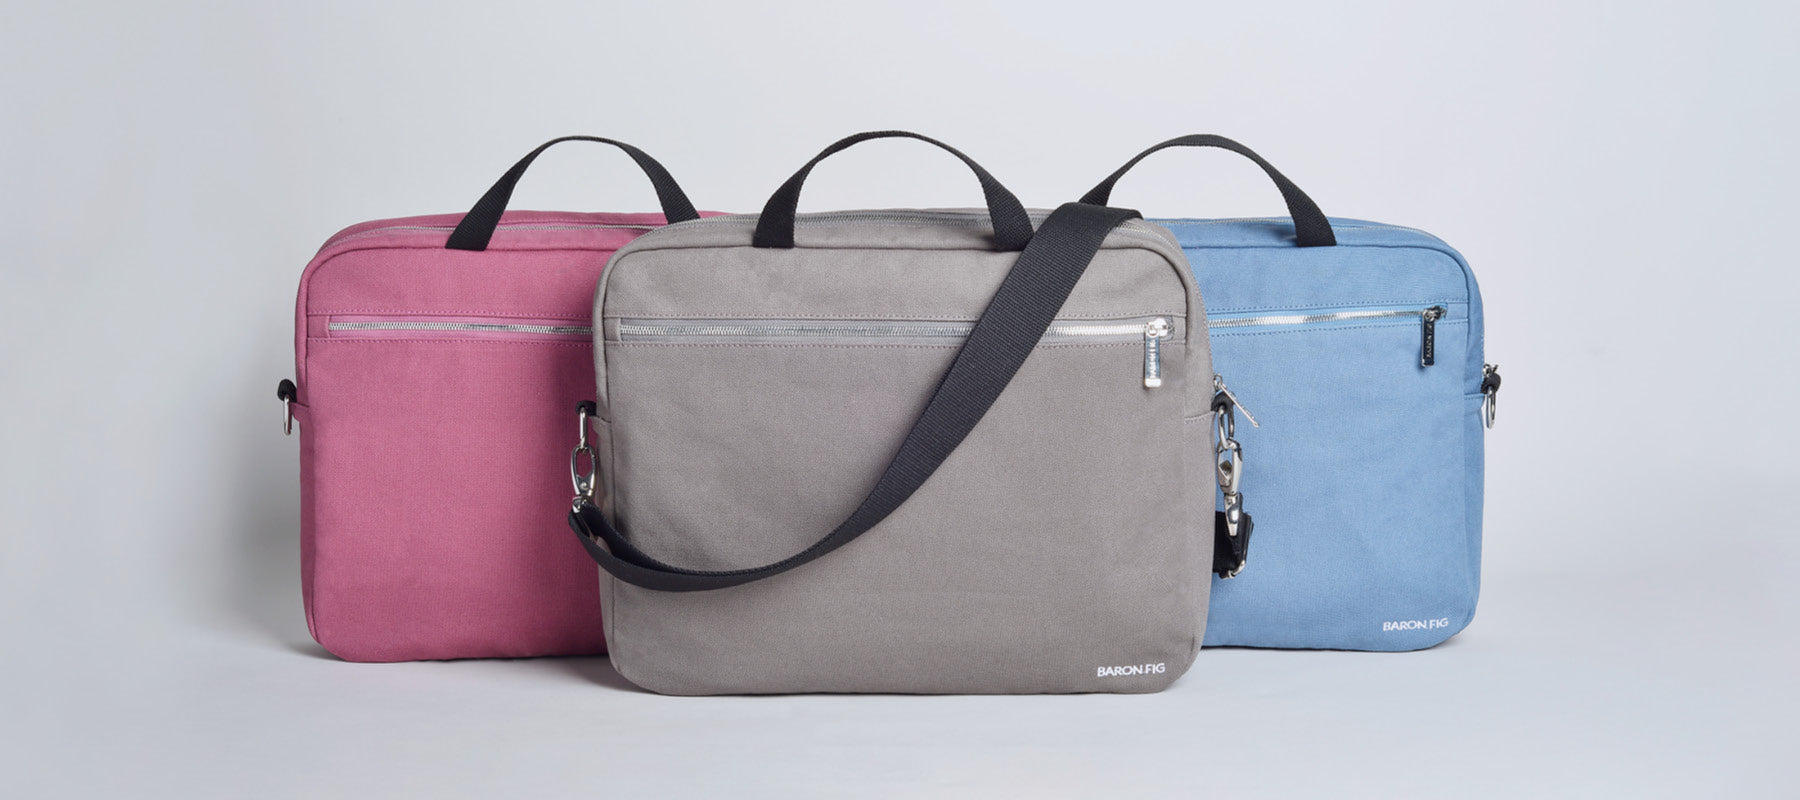 fig wine, charcoal, blue slate messenger bags